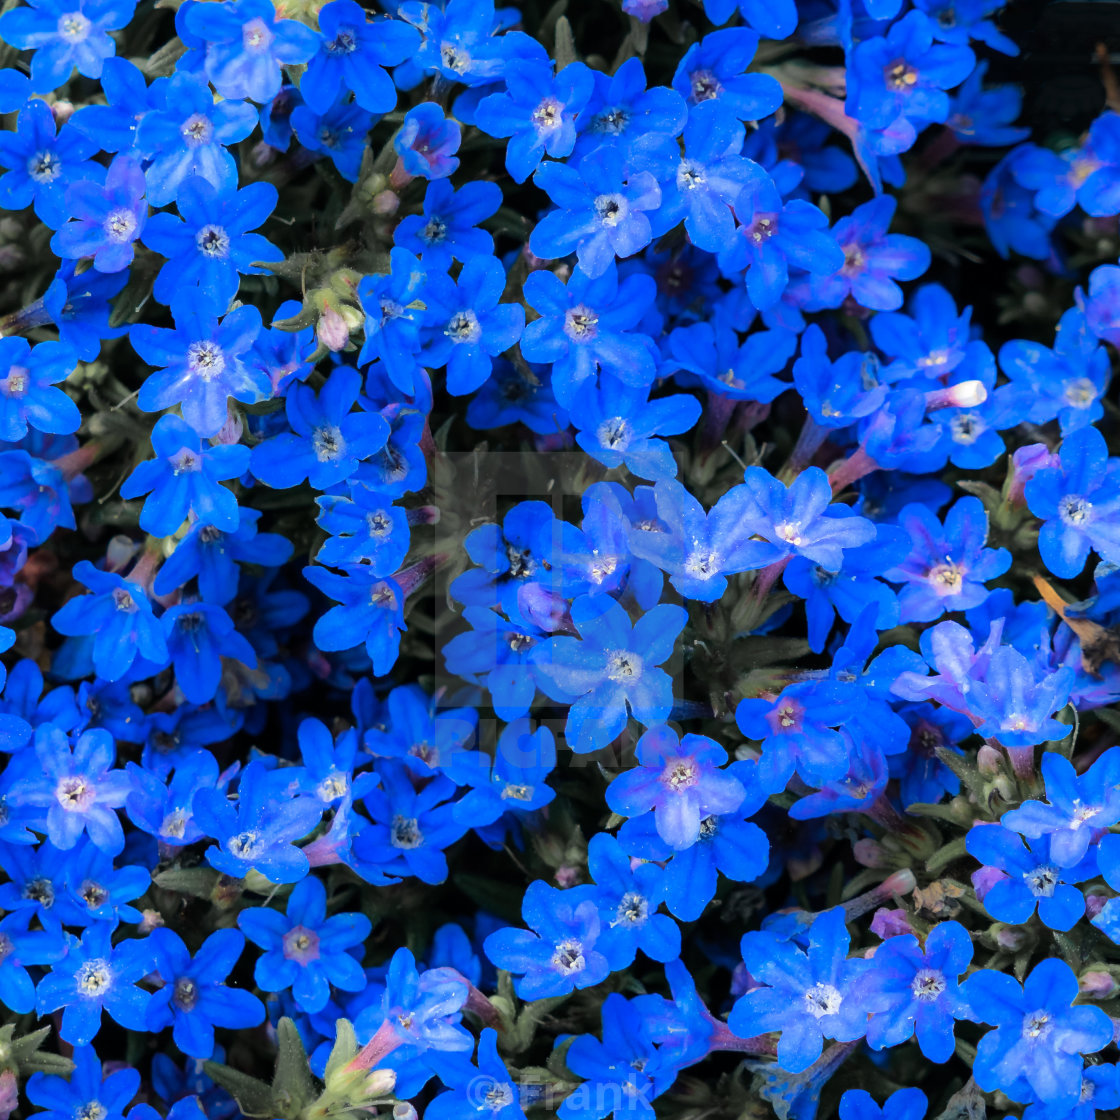 Small Dark Blue Flowers That Grow Closely Together And Form A Blue To Violet License Download Or Print For 2 75 Photos Picfair